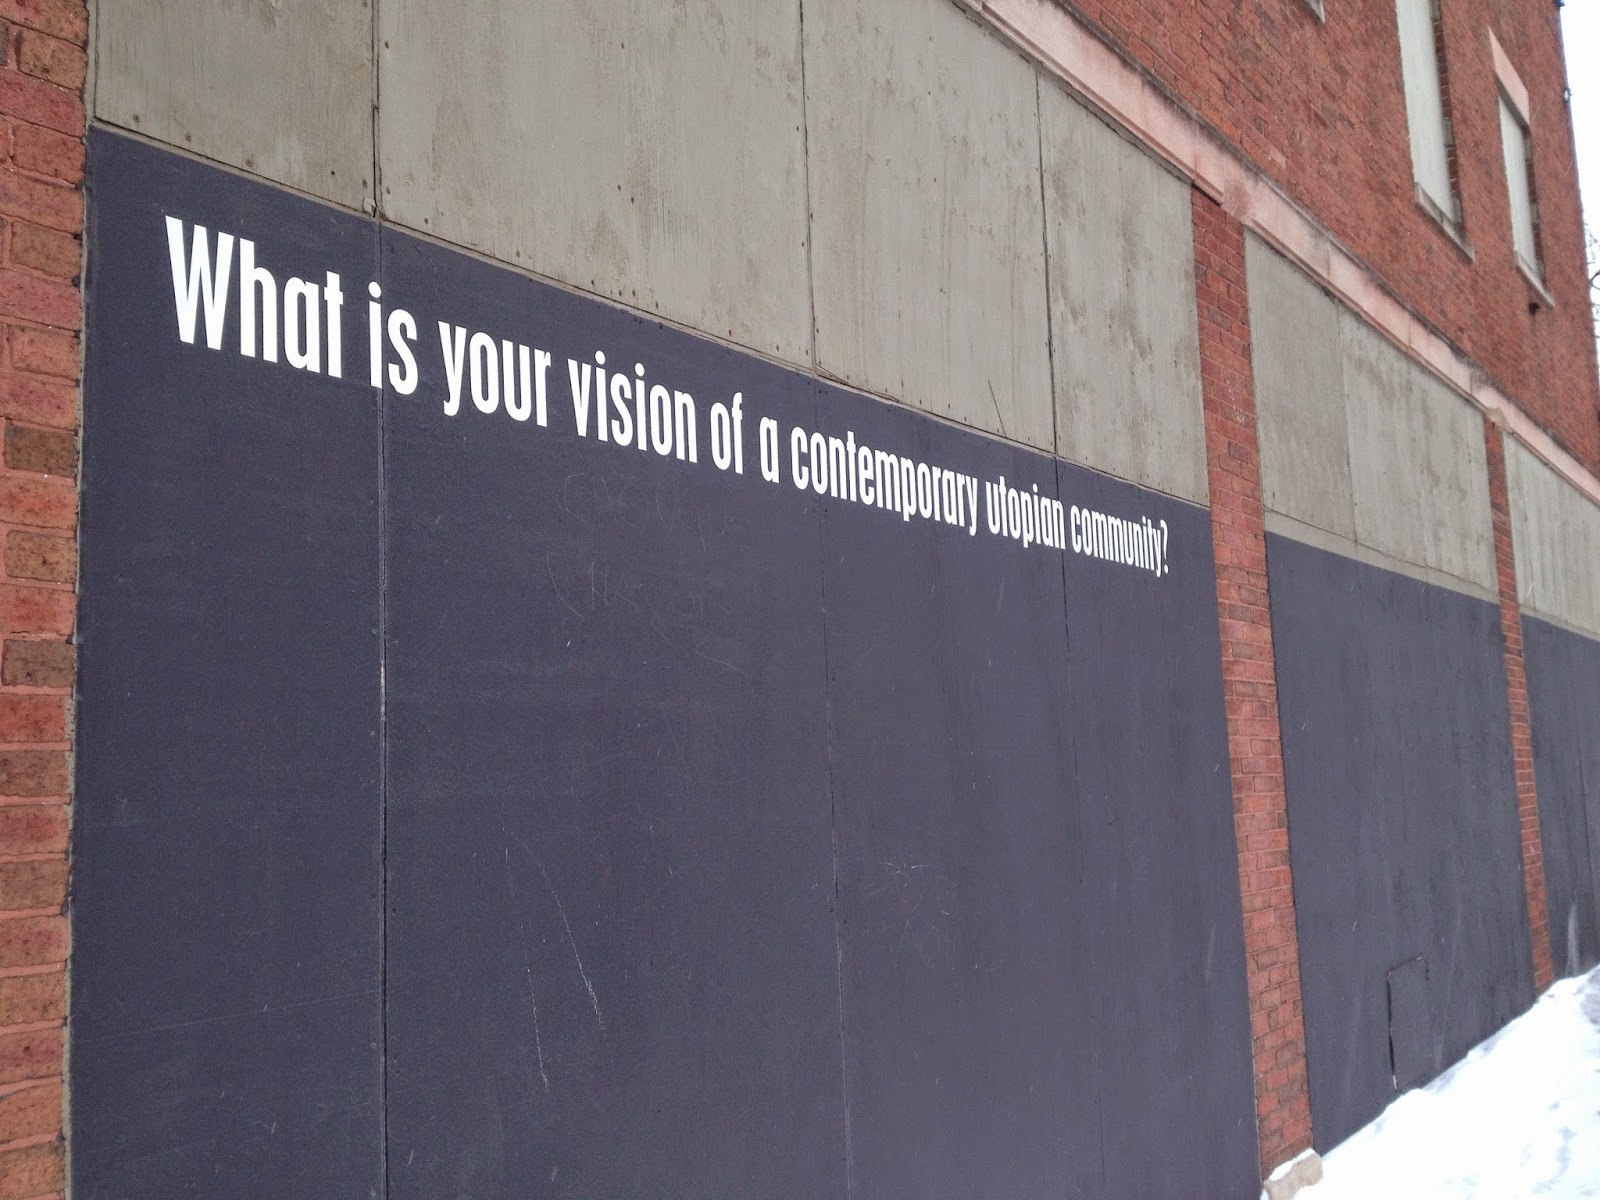 What is your vision of a contemporary utopia community?